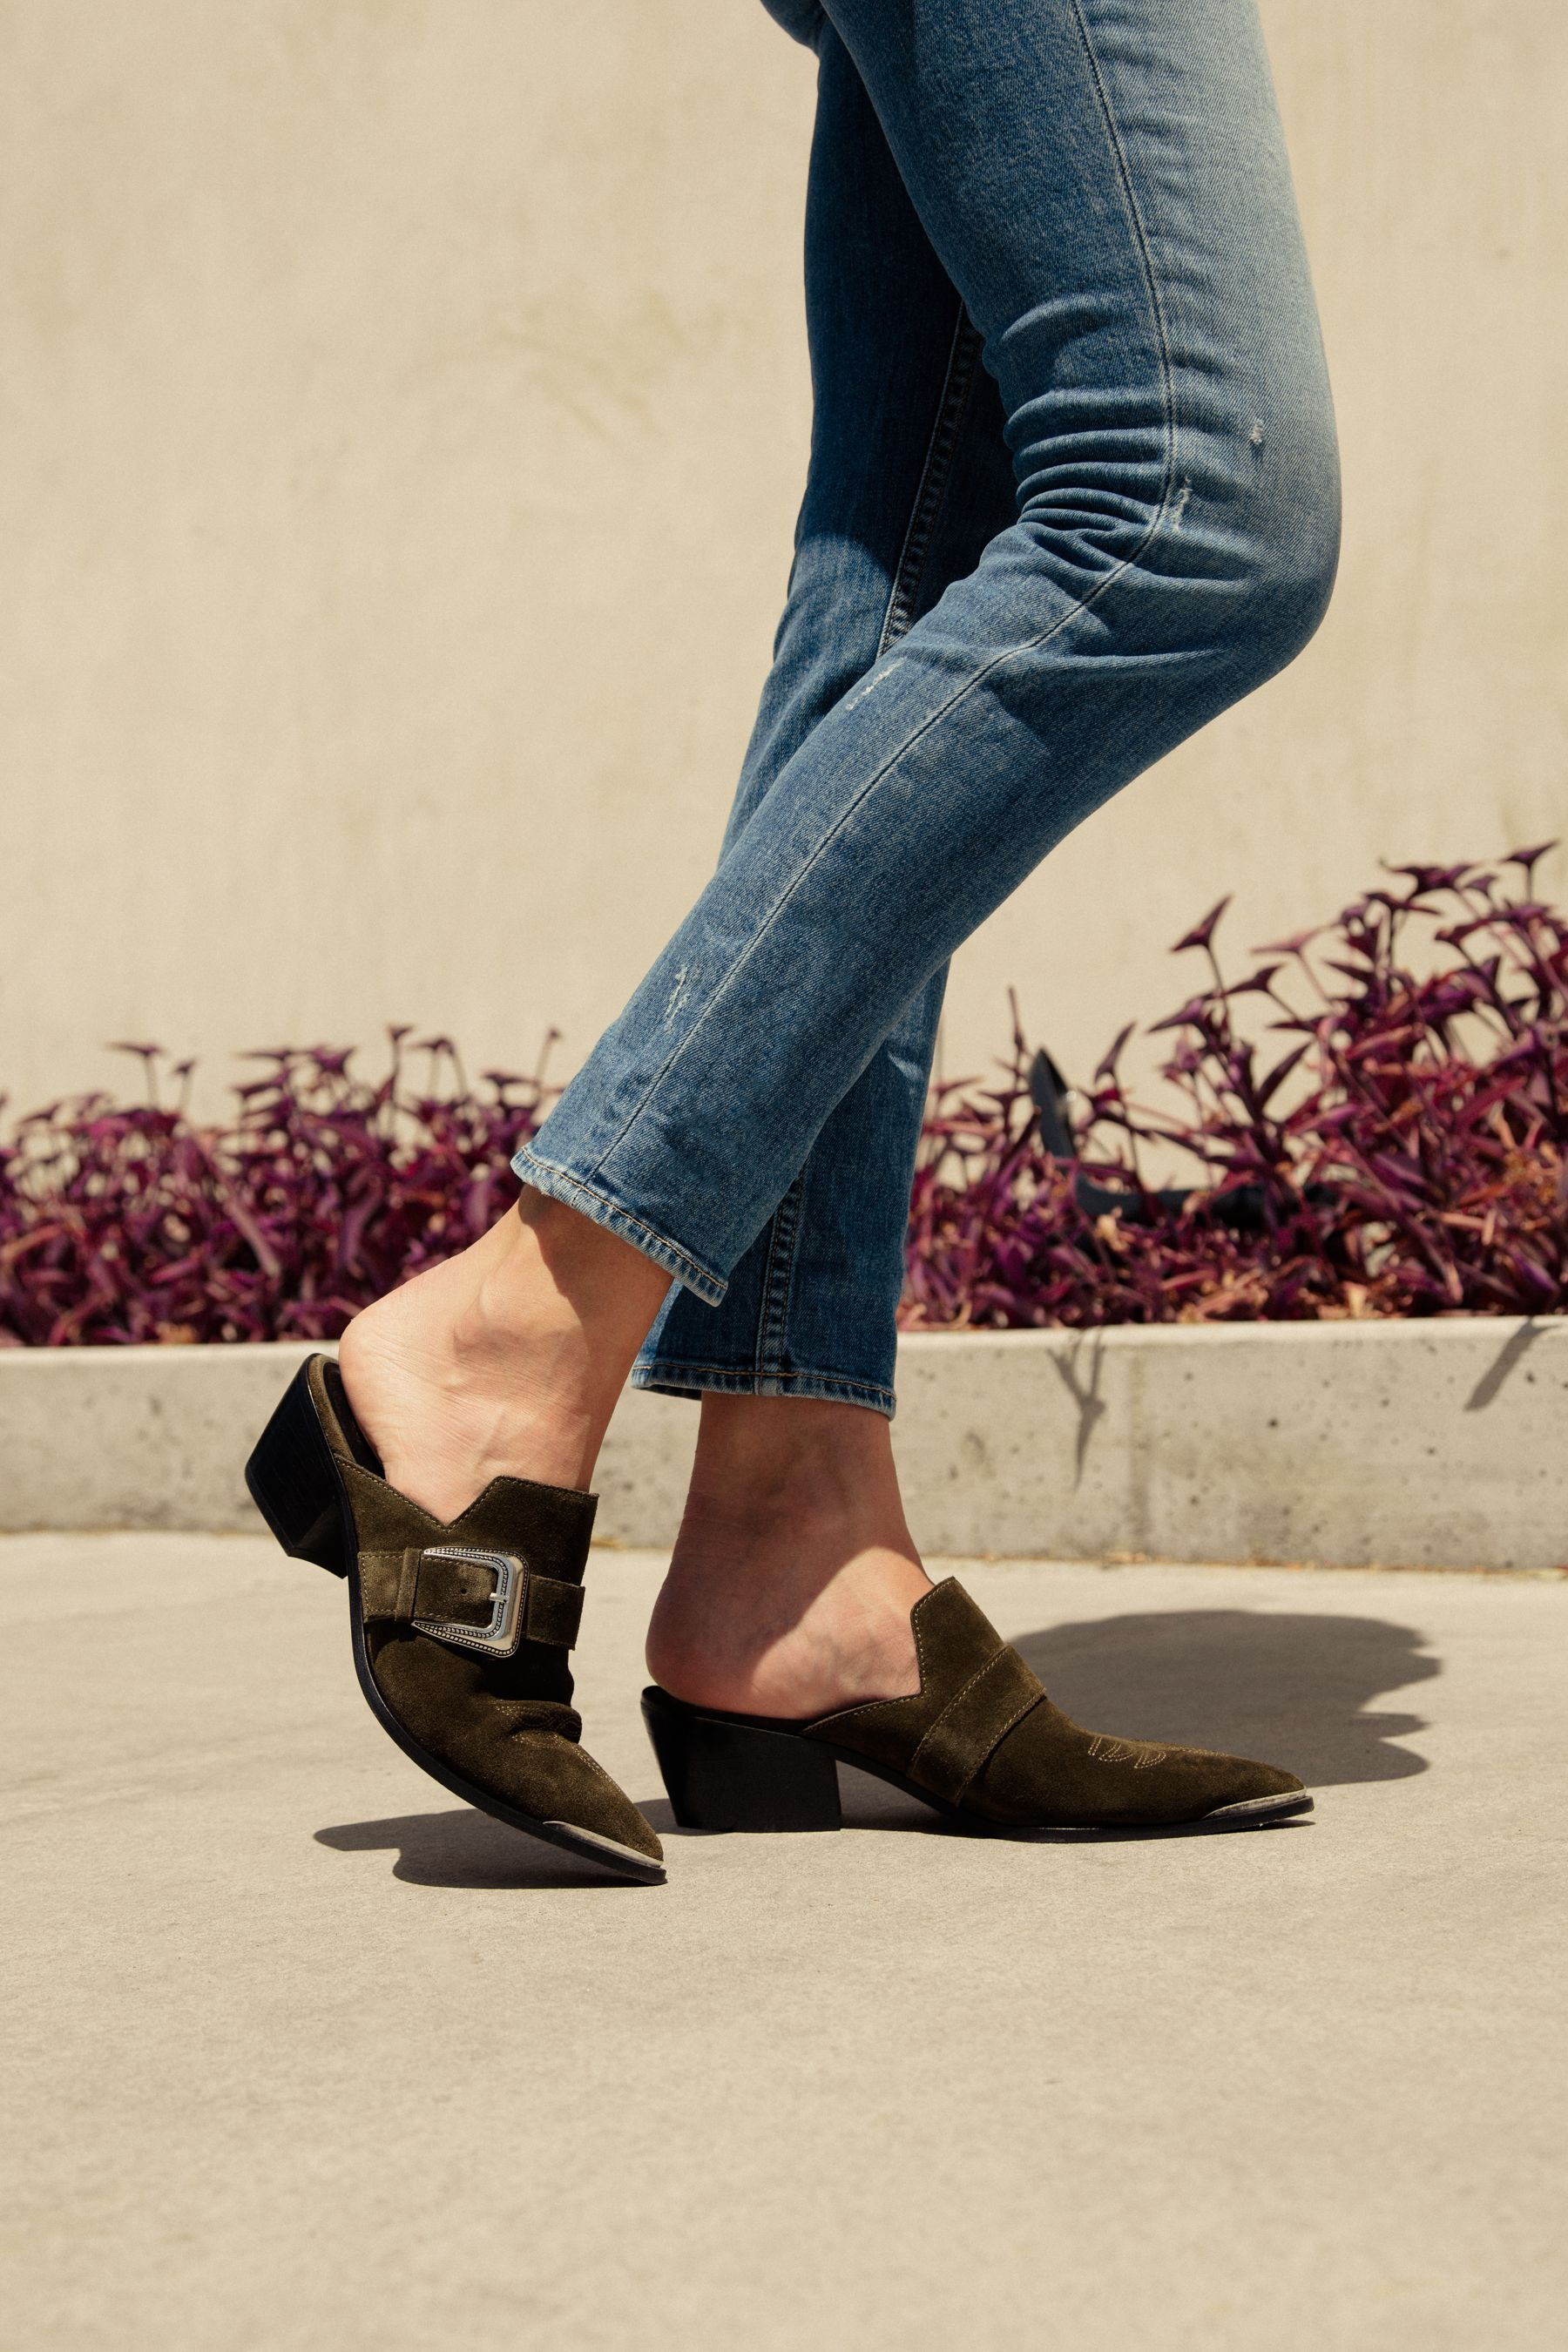 How to Pull Off Fall's Western-Inspired ShoeTrend How to Pull Off Fall's Western-Inspired ShoeTrend new pics